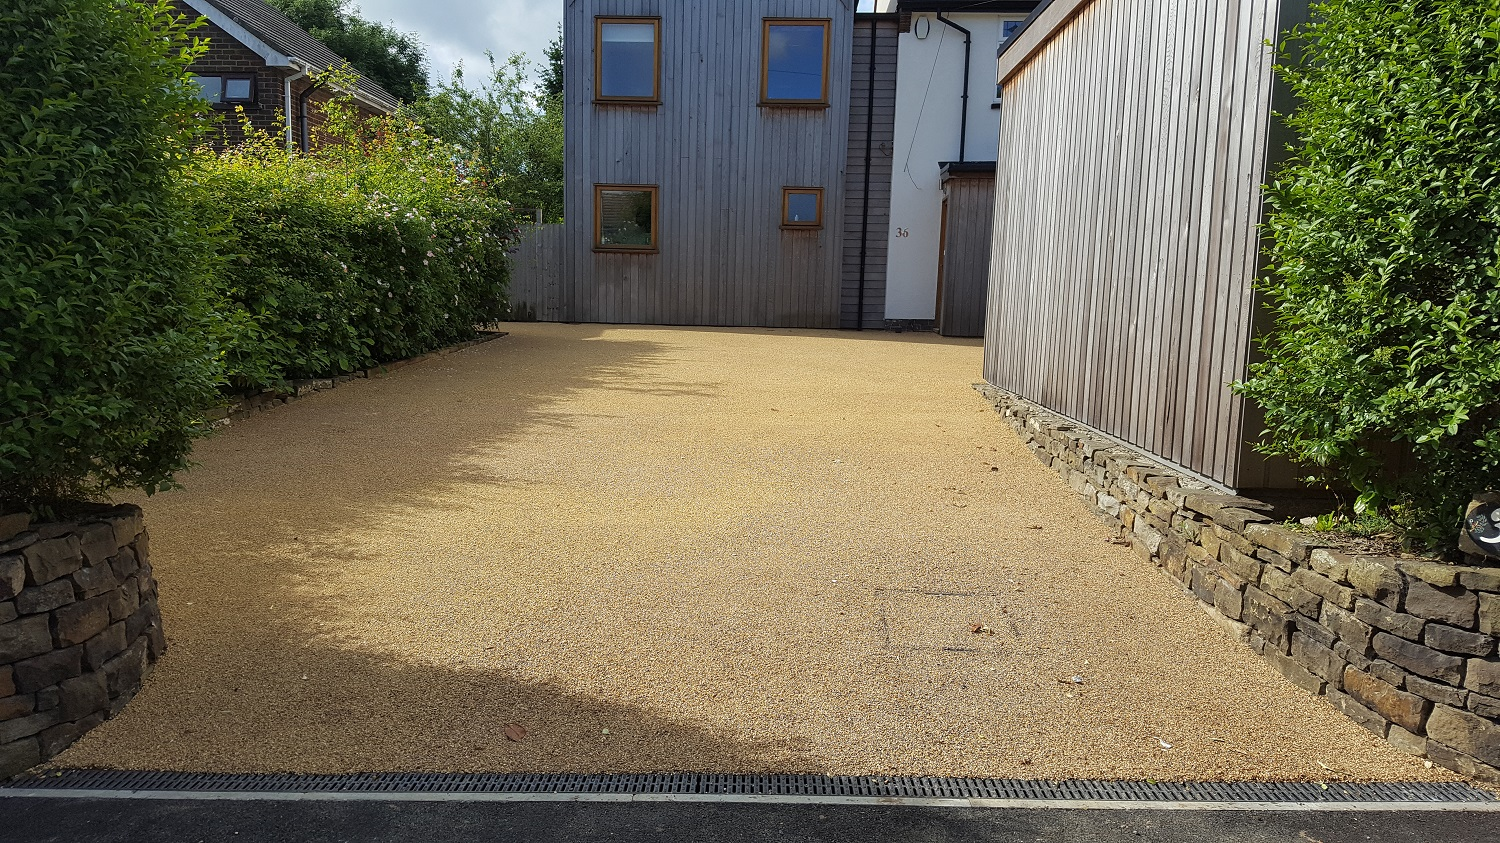 B5 - Resin Bonded Driveway Surfacing at Walton in Chesterfield